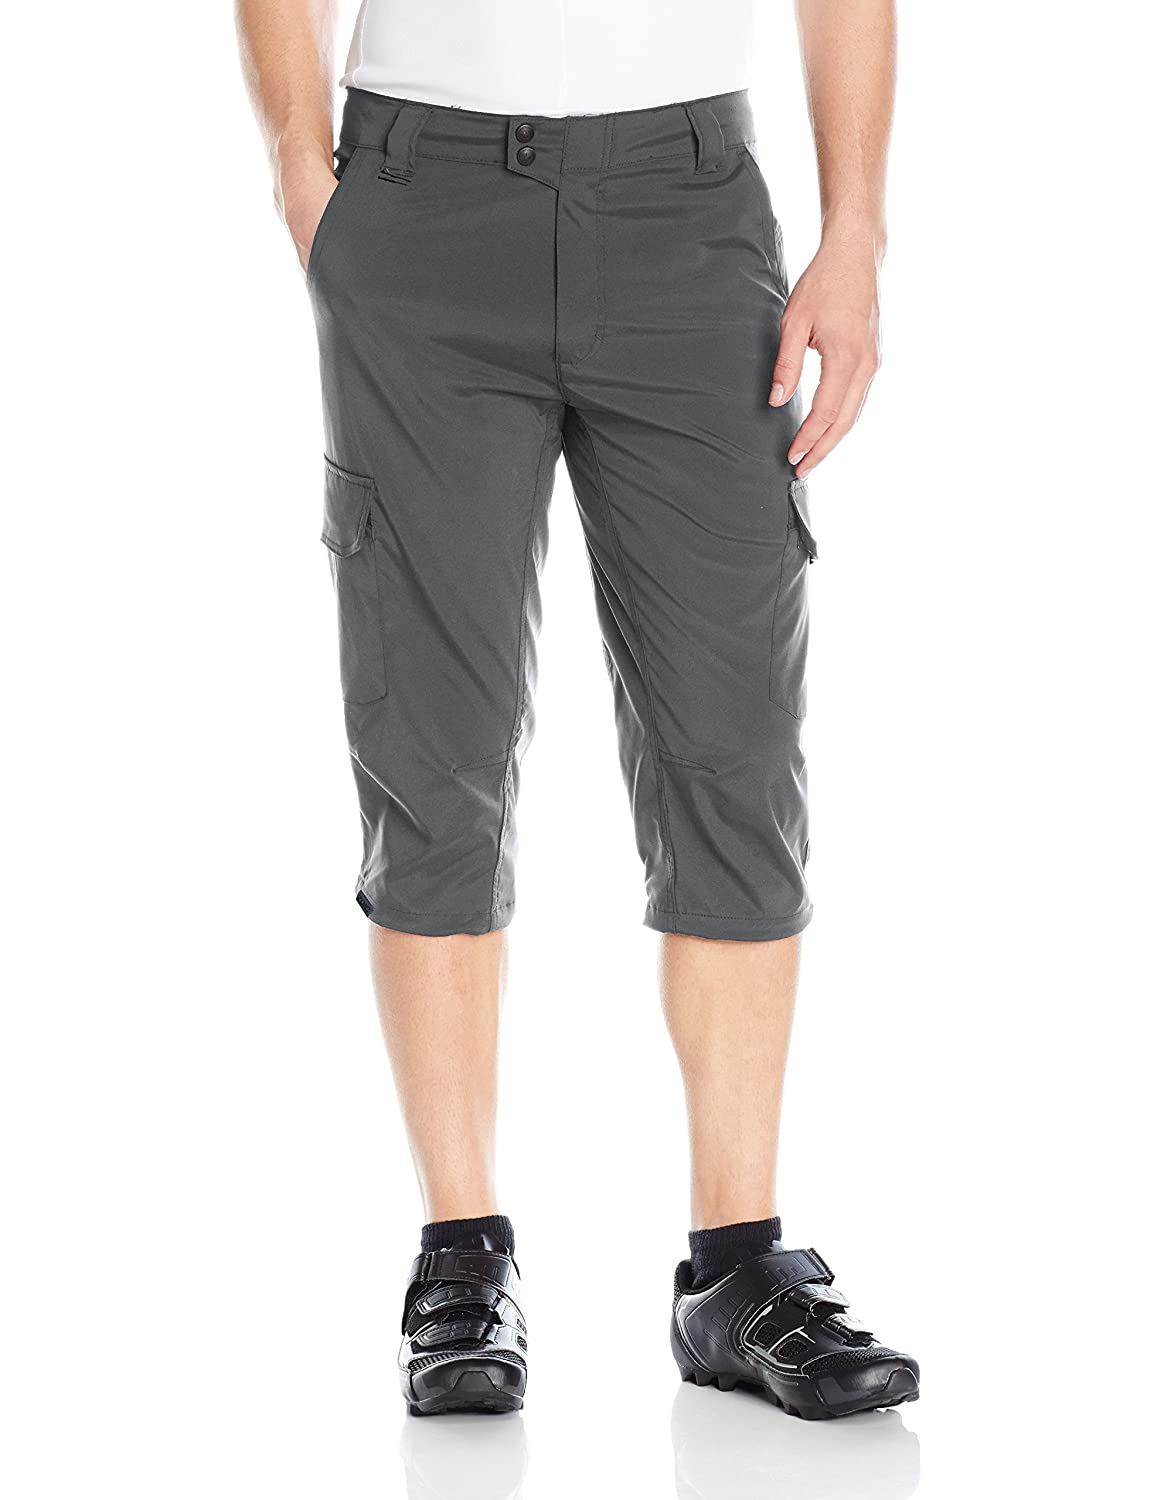 ZOIC Reign Knicker ZOIC Clothing